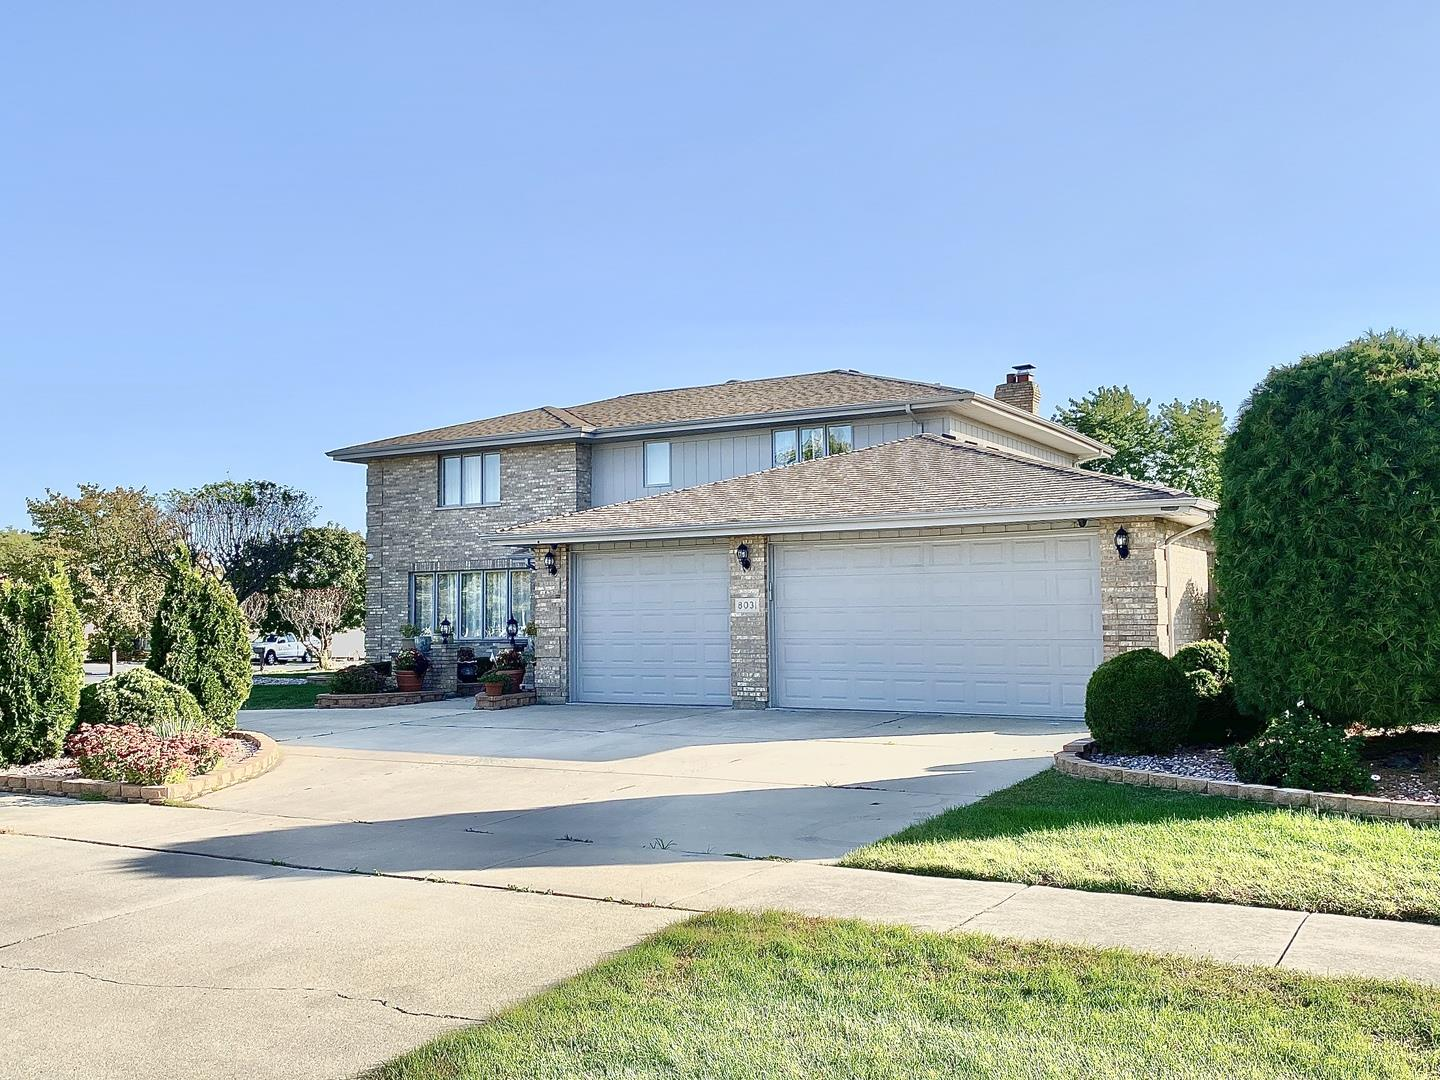 8031 Valley View Drive, Tinley Park, IL 60477 - #: 10901926